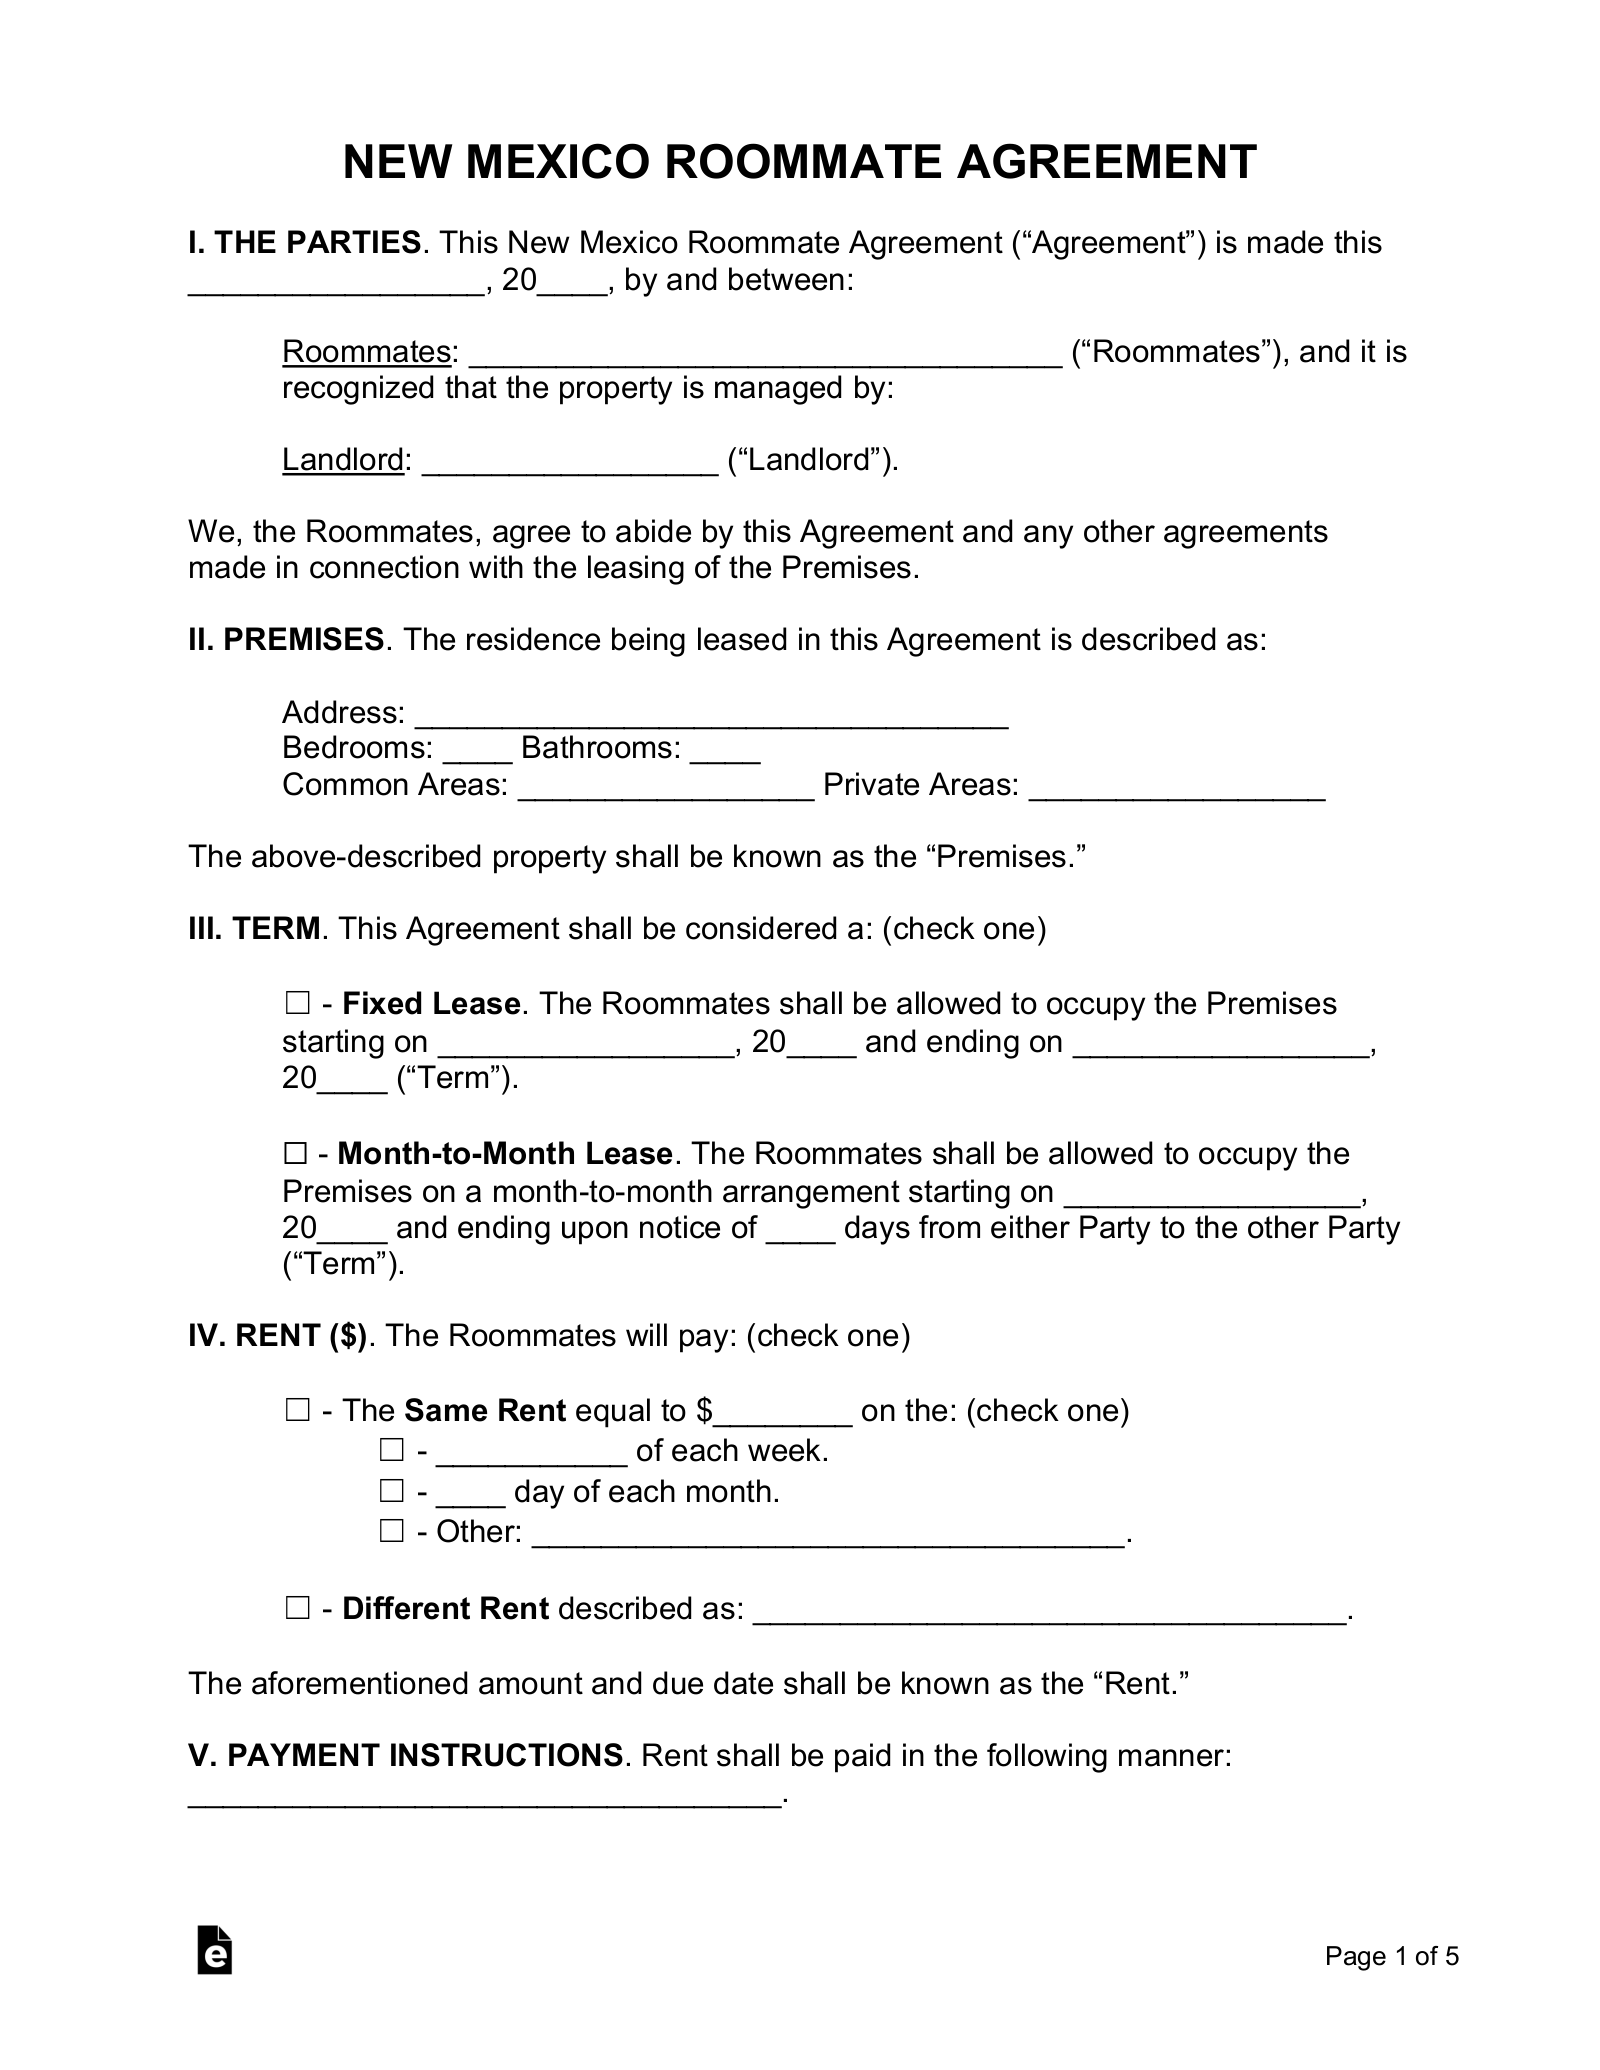 Free New Mexico Roommate Agreement Form Pdf Word